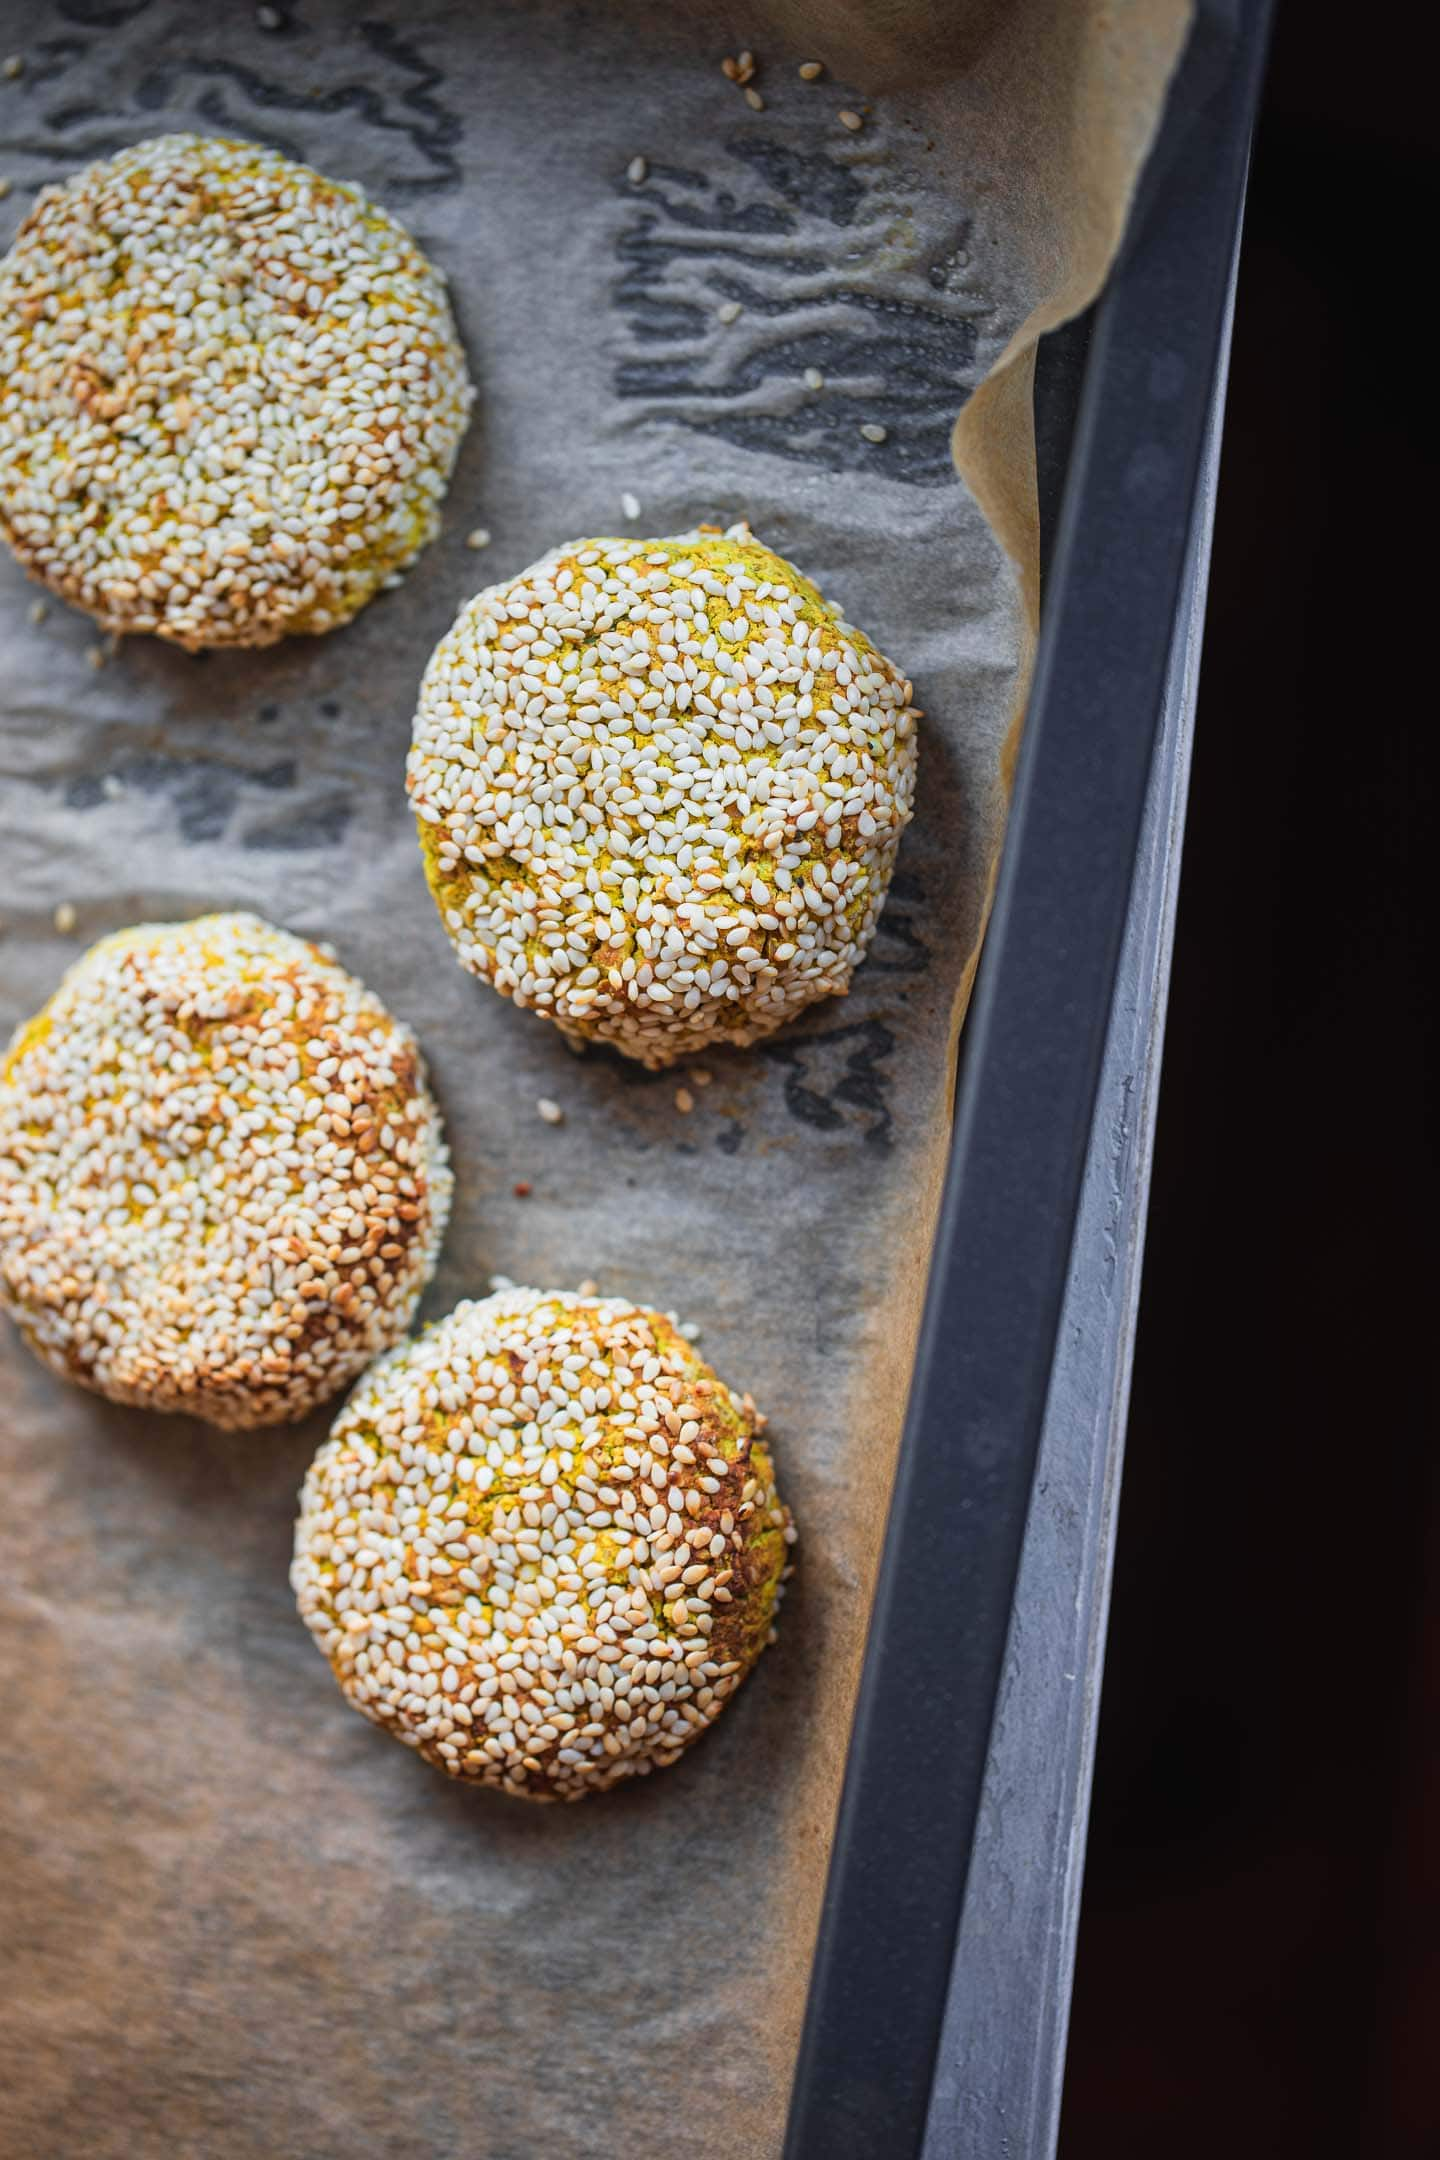 Gluten-free falafel with sesame seeds on a baking tray